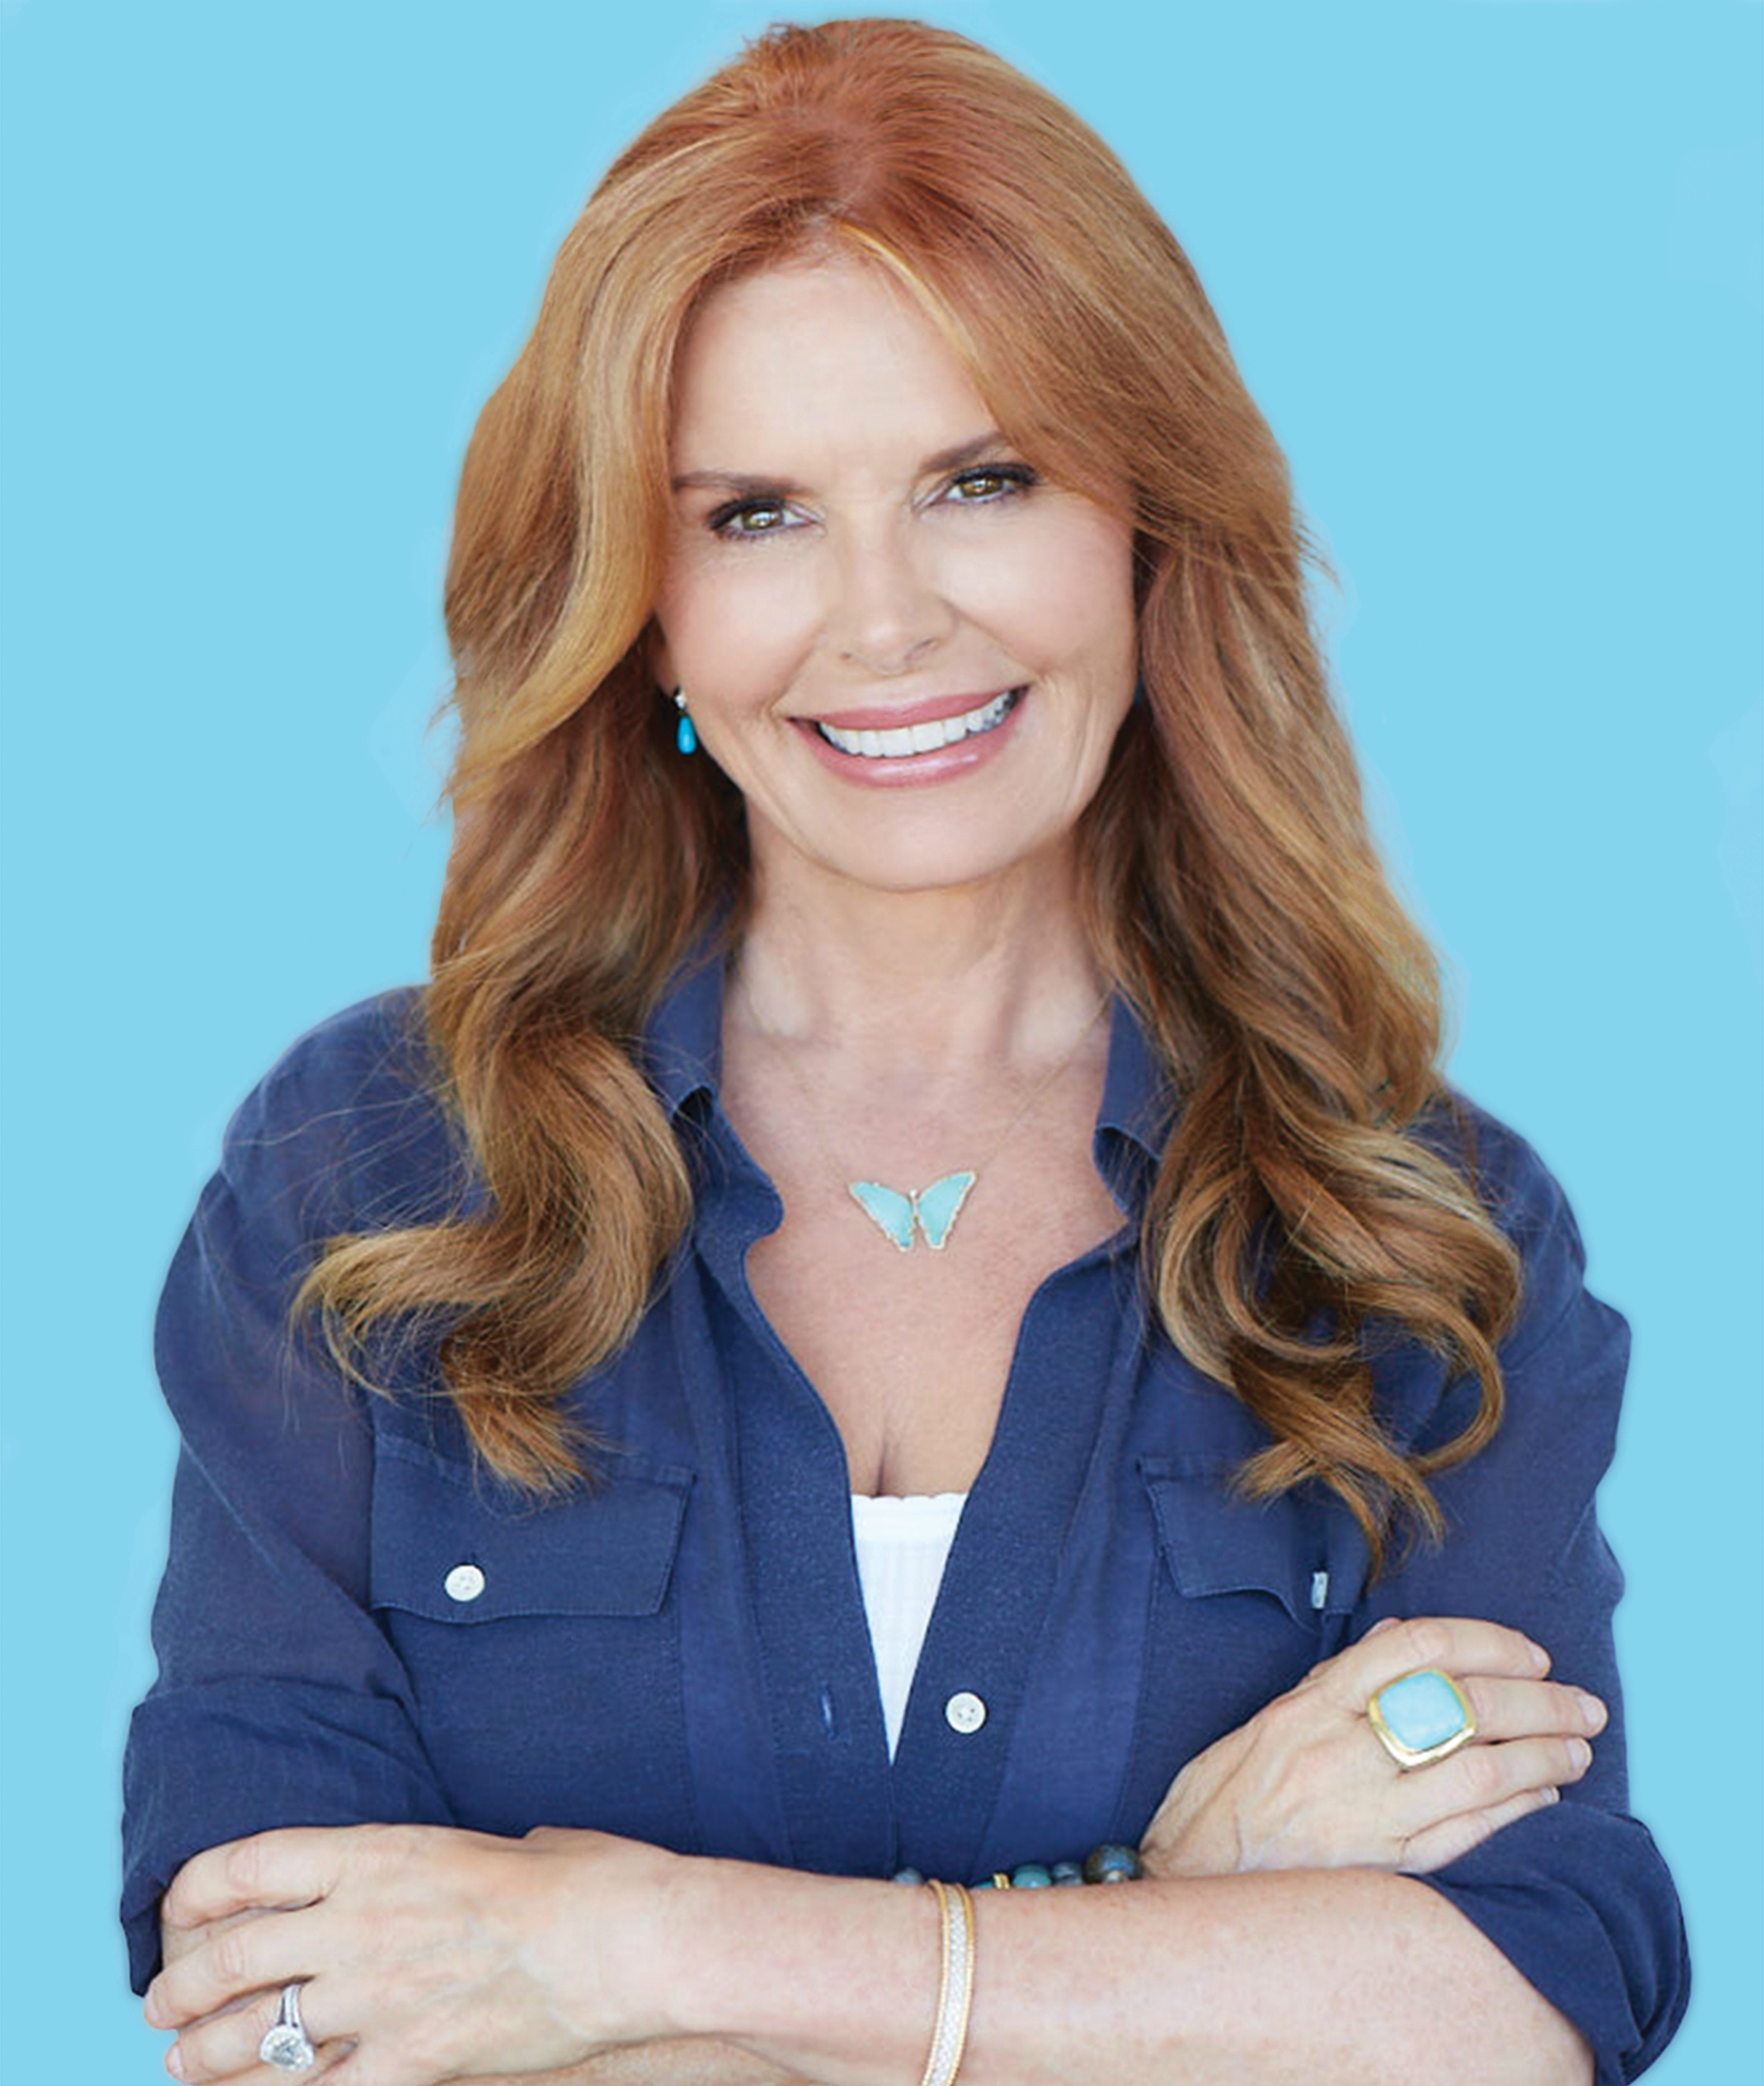 Westlake Legal Group Roma-Downey Roma Downey: You are not alone. You are never alone. (Don't you know that God loves you?) Roma Downey fox-news/opinion fox-news/faith-values/values fox-news/faith-values/faith fox-news/faith-values fox news fnc/opinion fnc article a3c62233-df53-5693-983b-bd8c628bb019